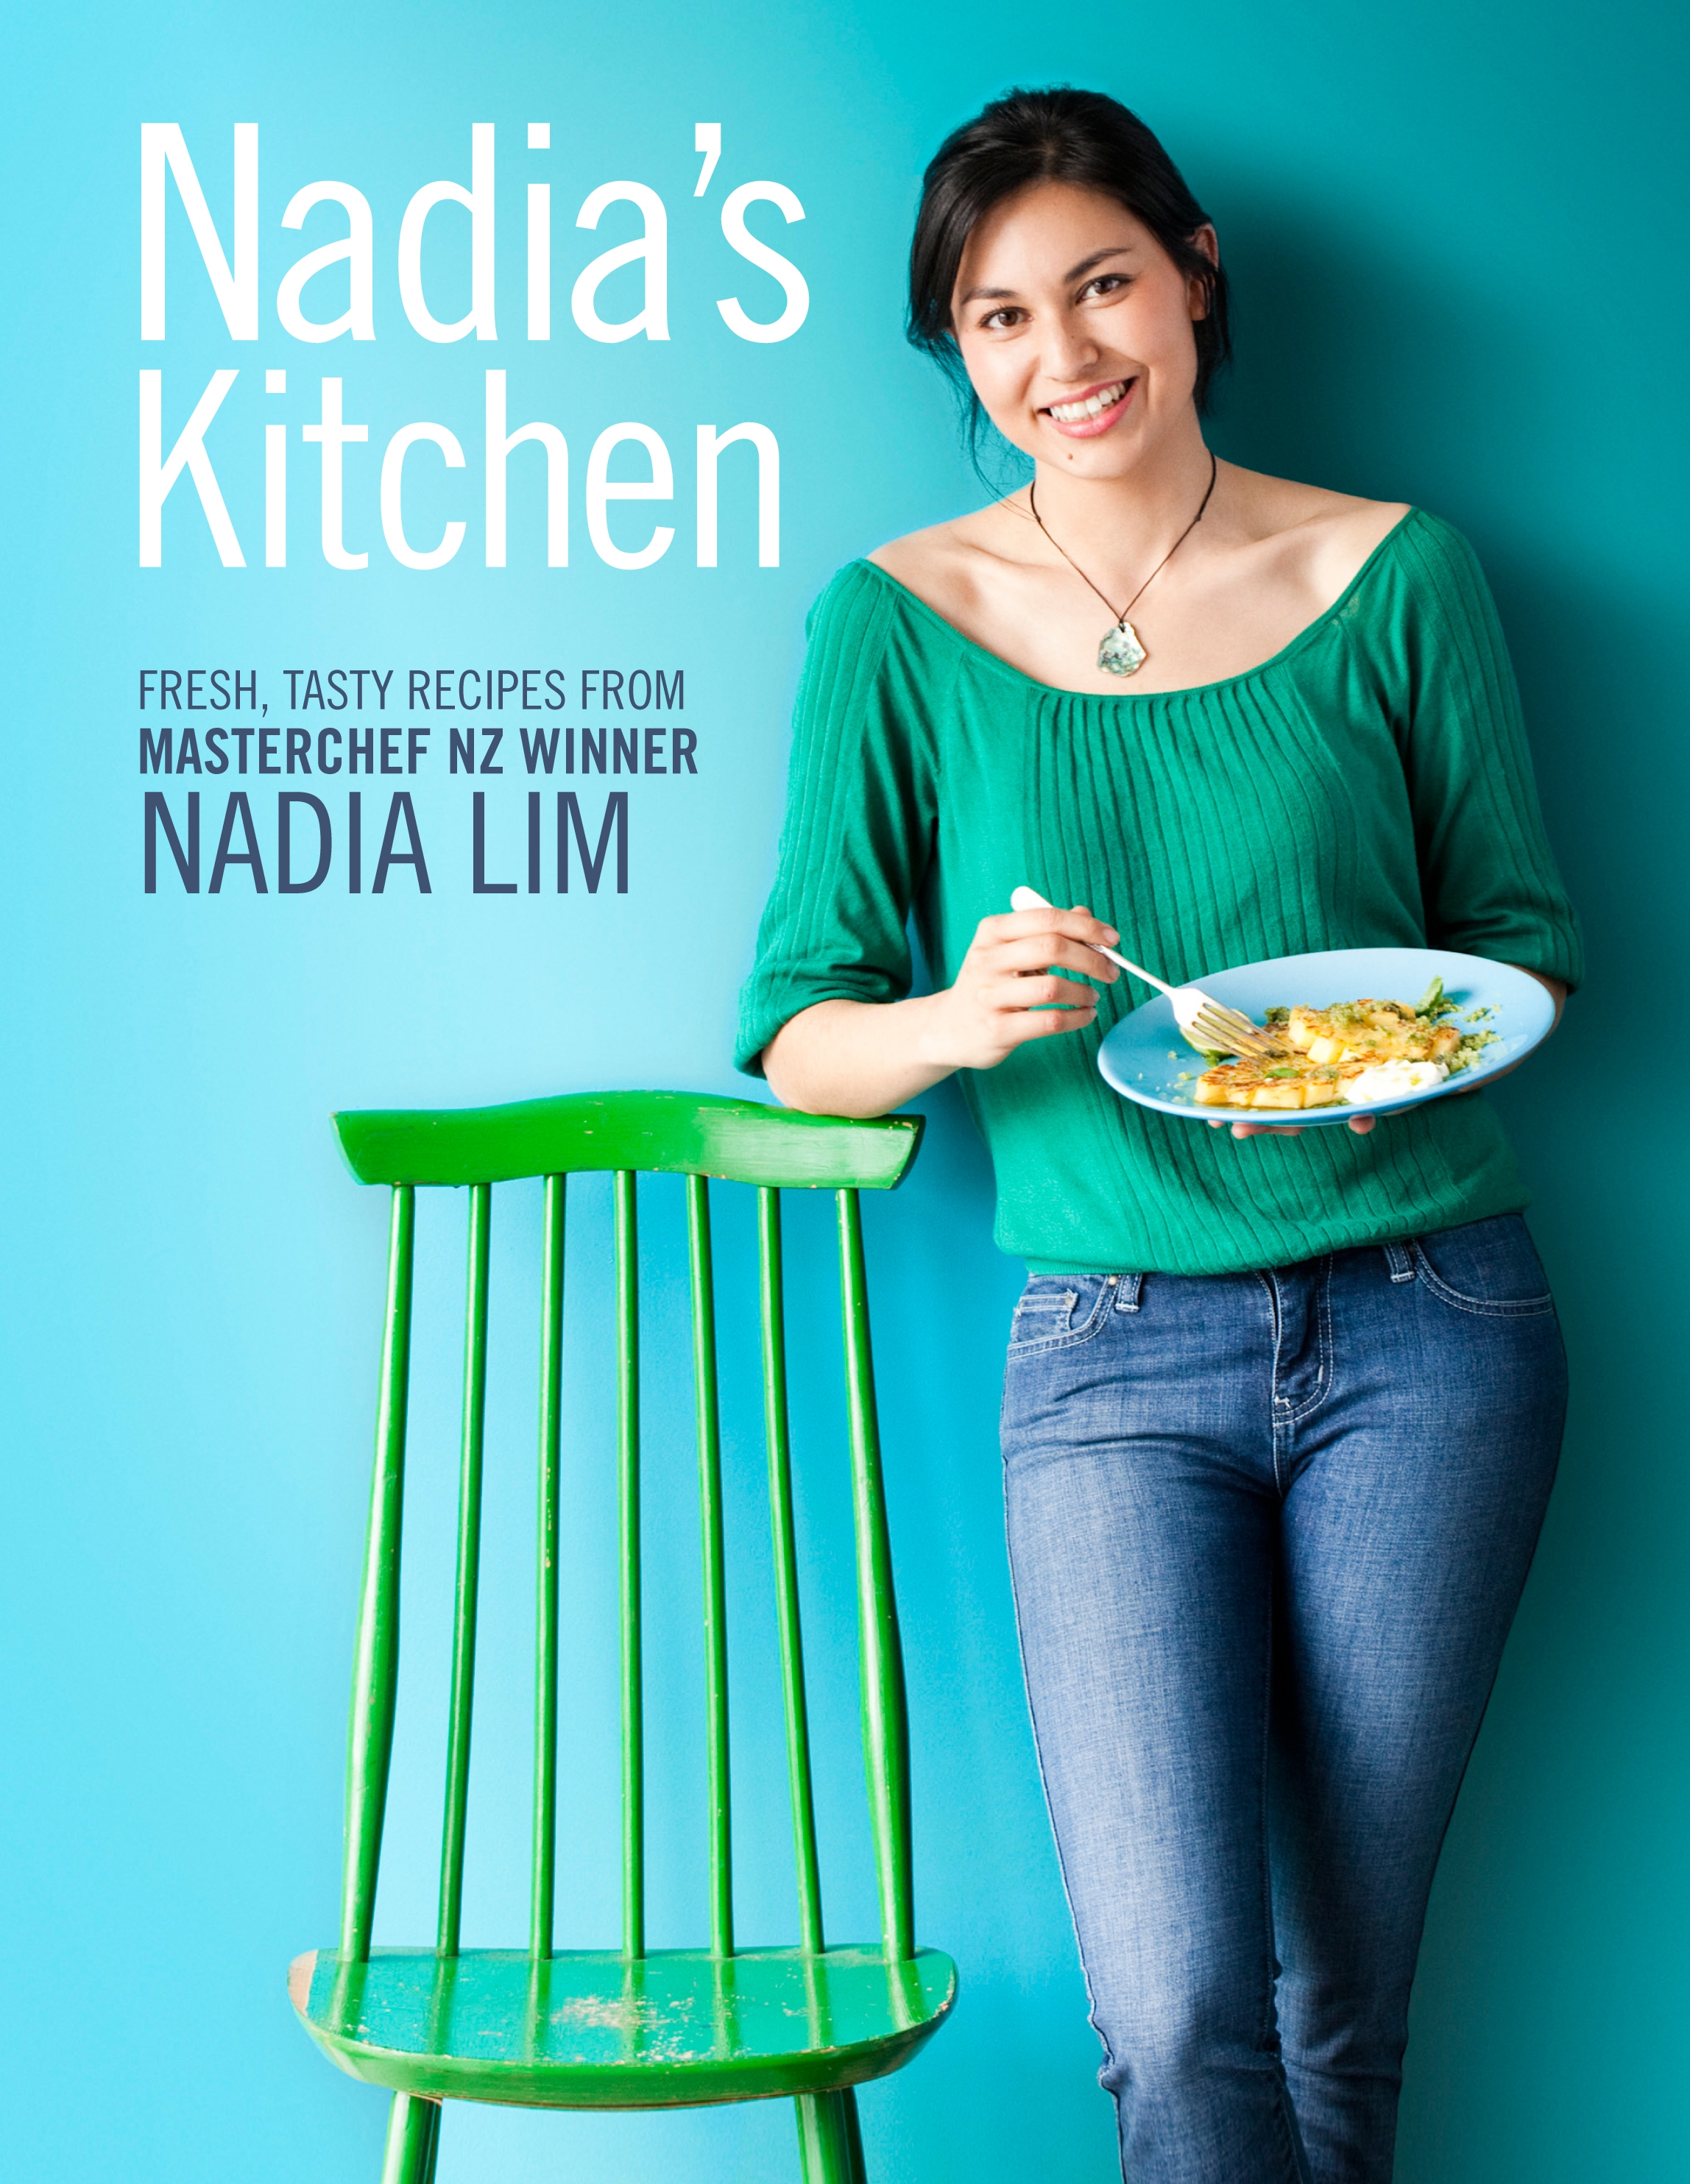 Nadias kitchen by nadia lim penguin books new zealand nadias kitchen by nadia lim forumfinder Image collections